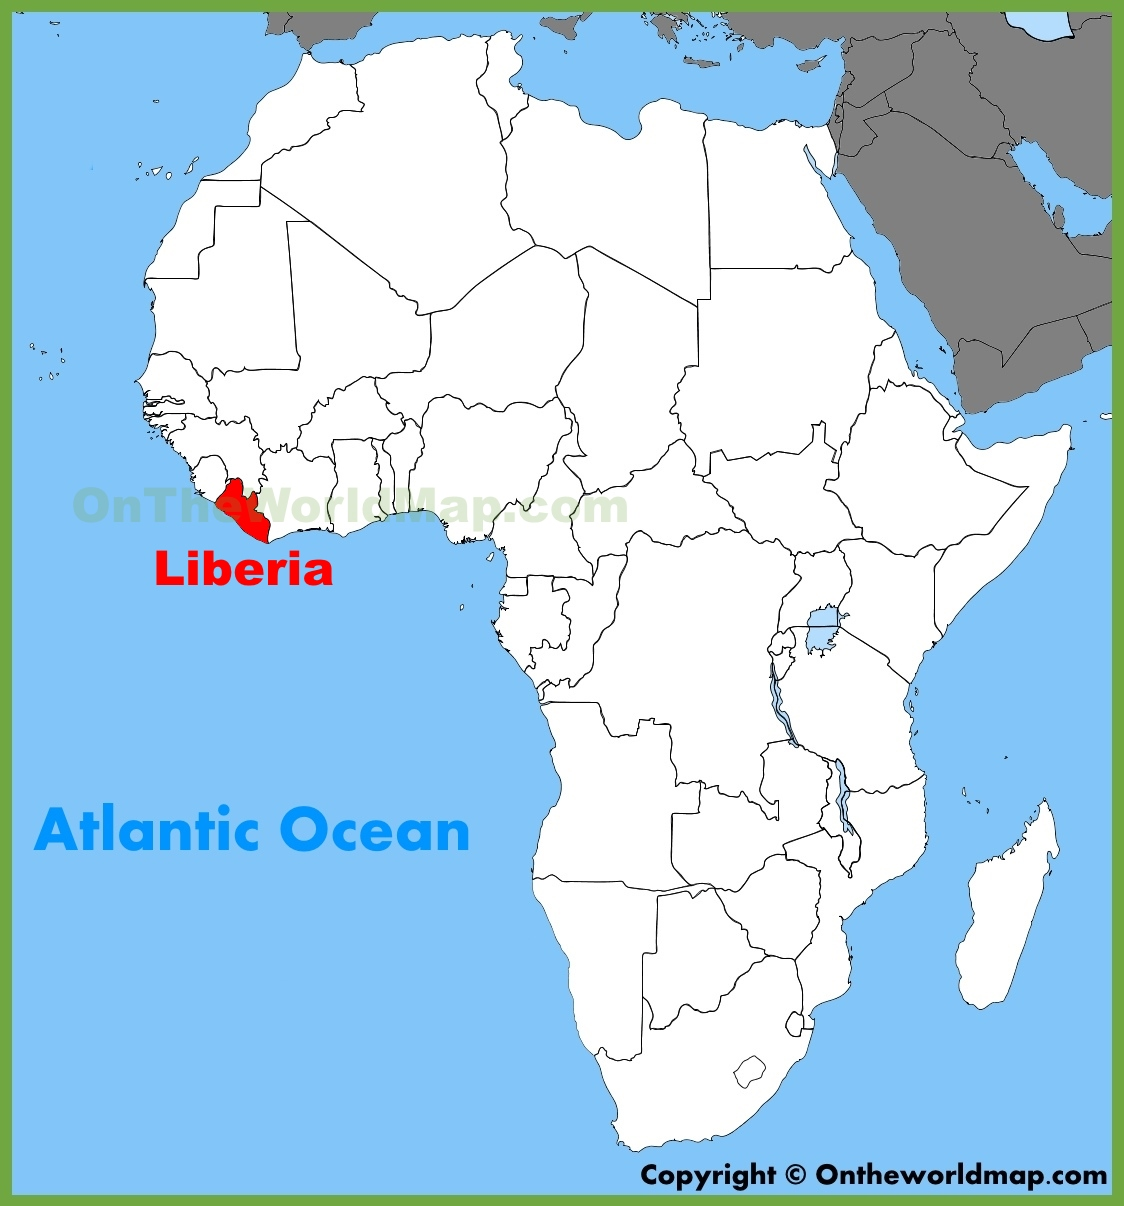 Liberia Africa Map Liberia location on the Africa map